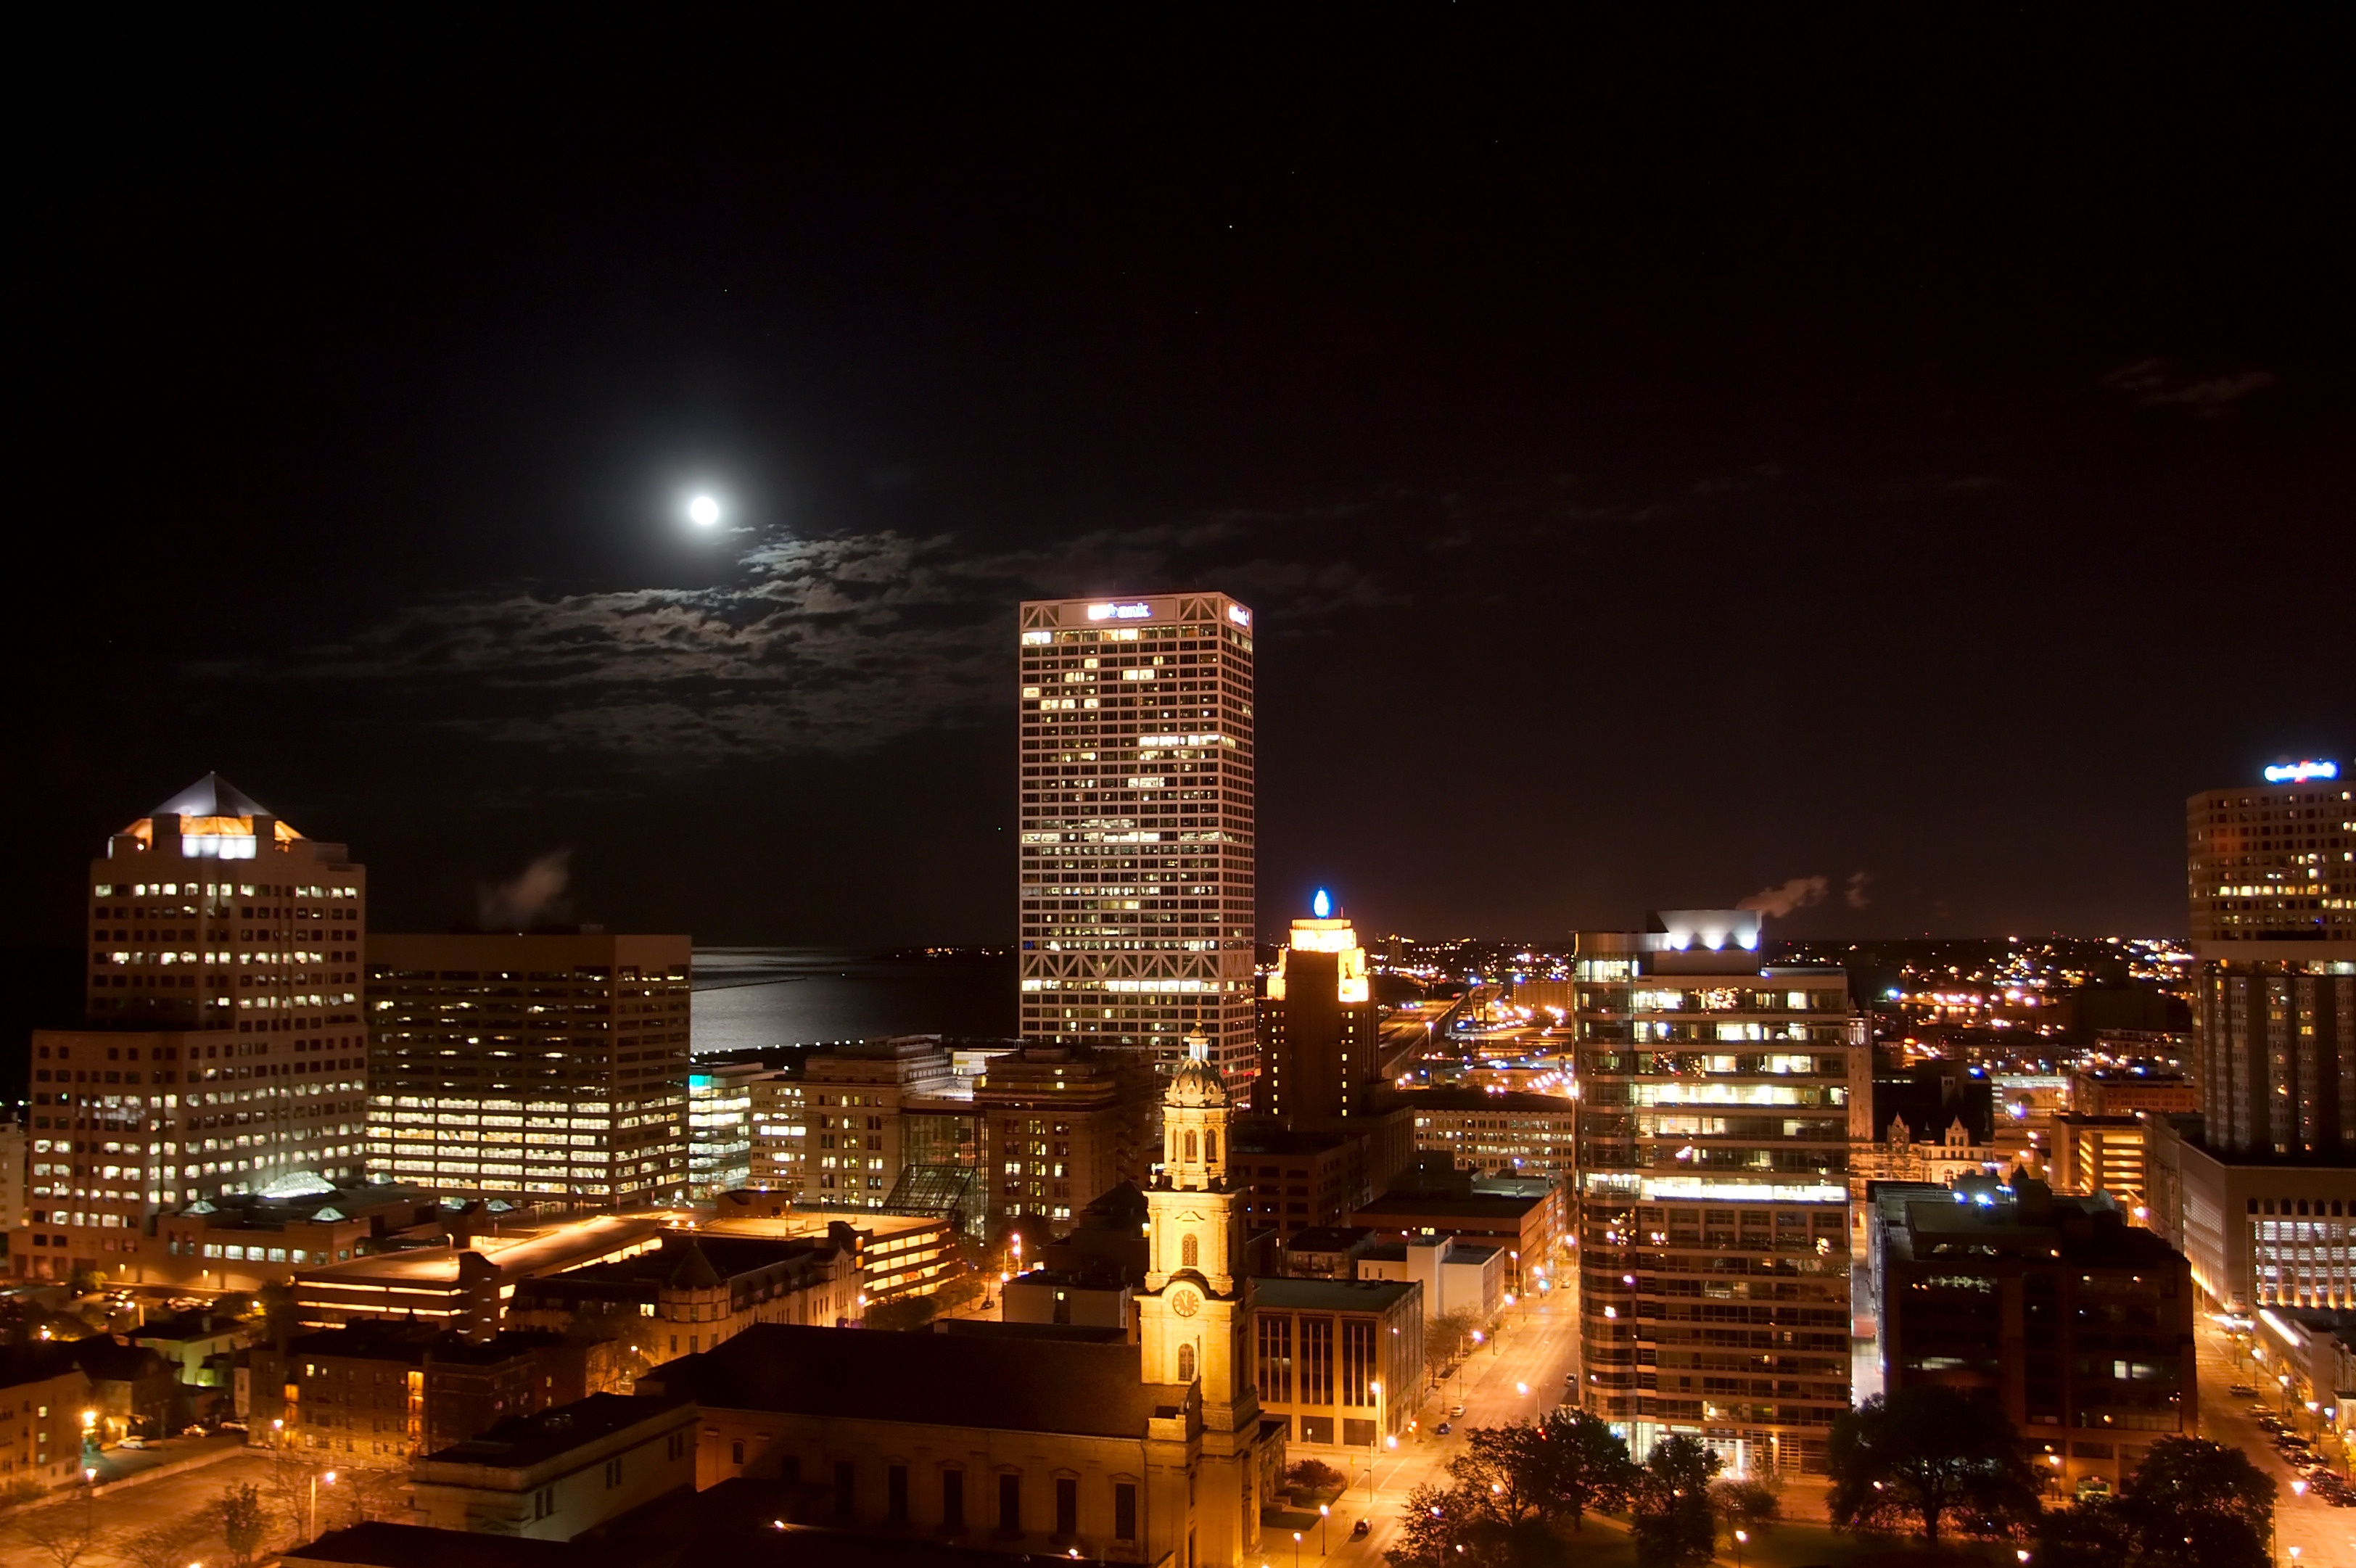 Milwaukee_Wisconsin_at_night_5441.jpg